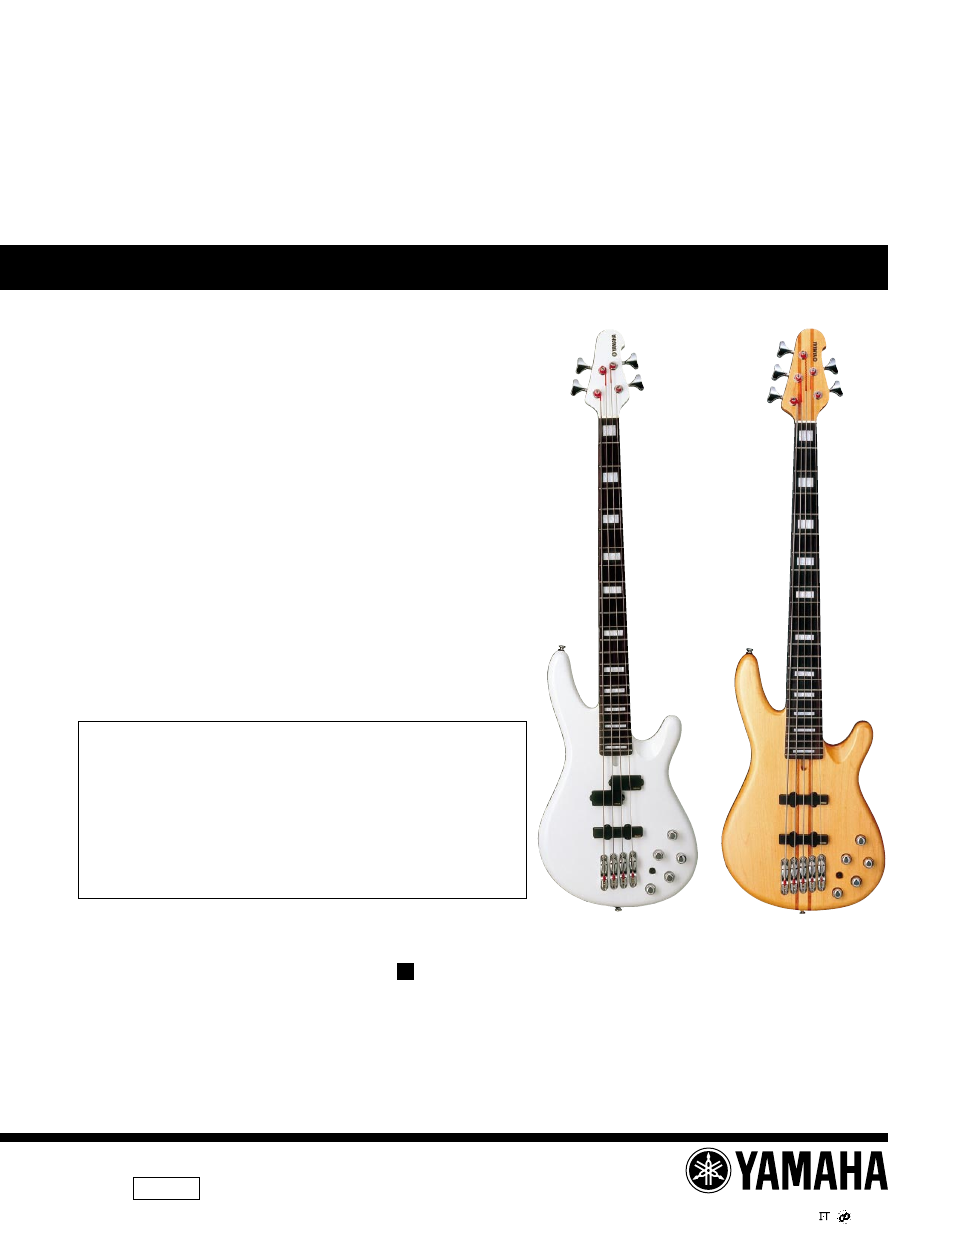 Yamaha Electric Bass Bb2004 User Manual 11 Pages Also For Fender Guitar Wiring Diagram Schematics Parts All About Bb2005